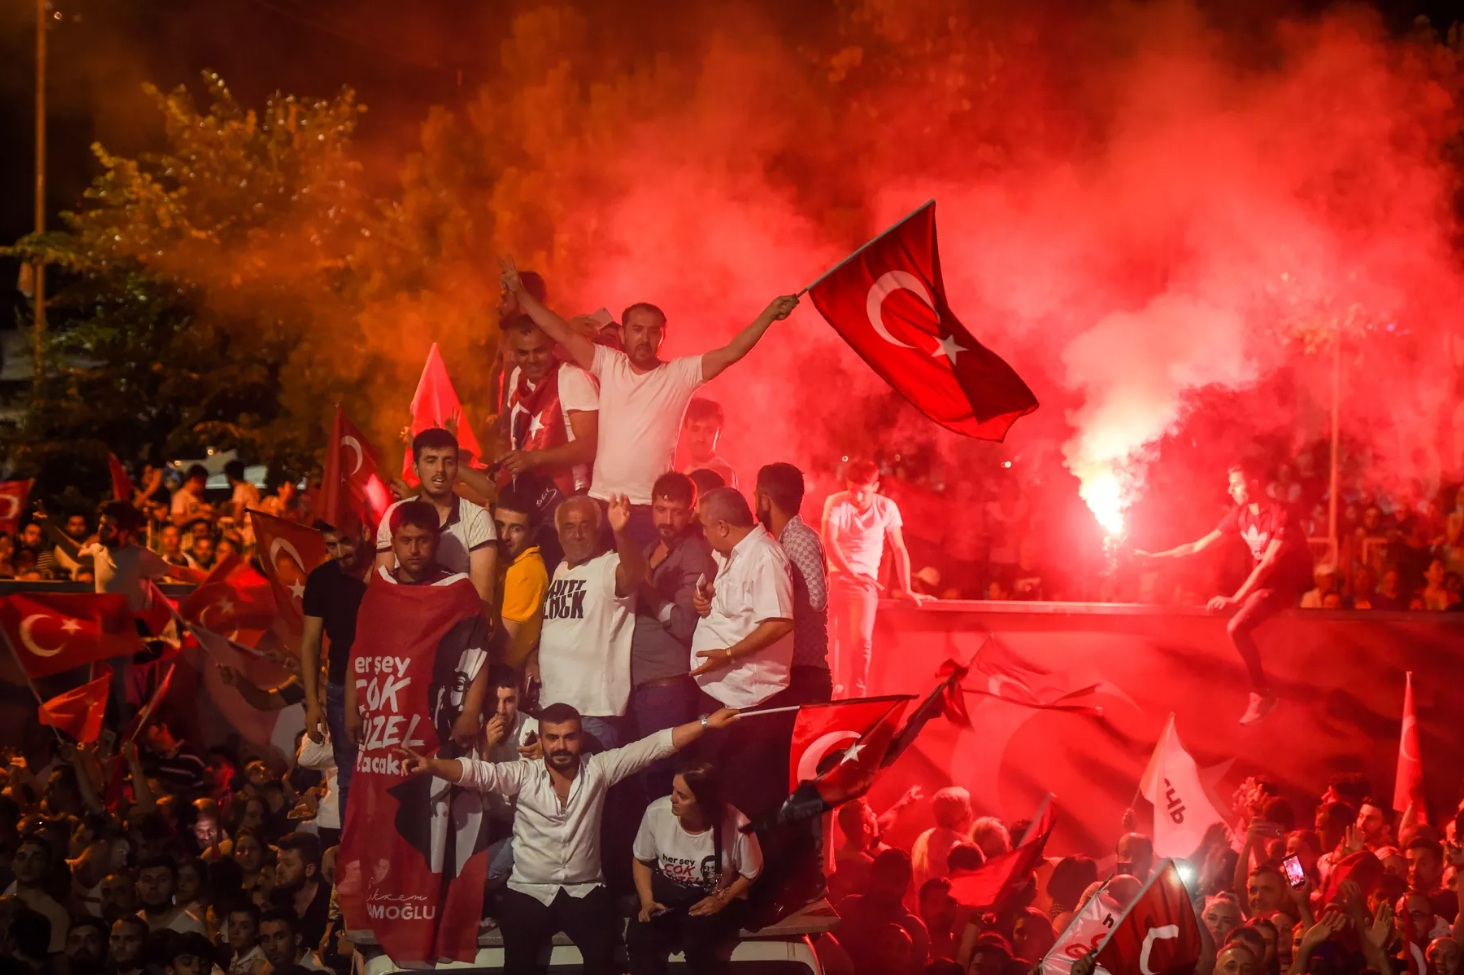 An Istanbul mayoral election is rattling Turkey's politics - I spoke to Vox on the Istanbul mayoral re-election and its implications for Turkey's national political scene.(June 2019)Read more here.